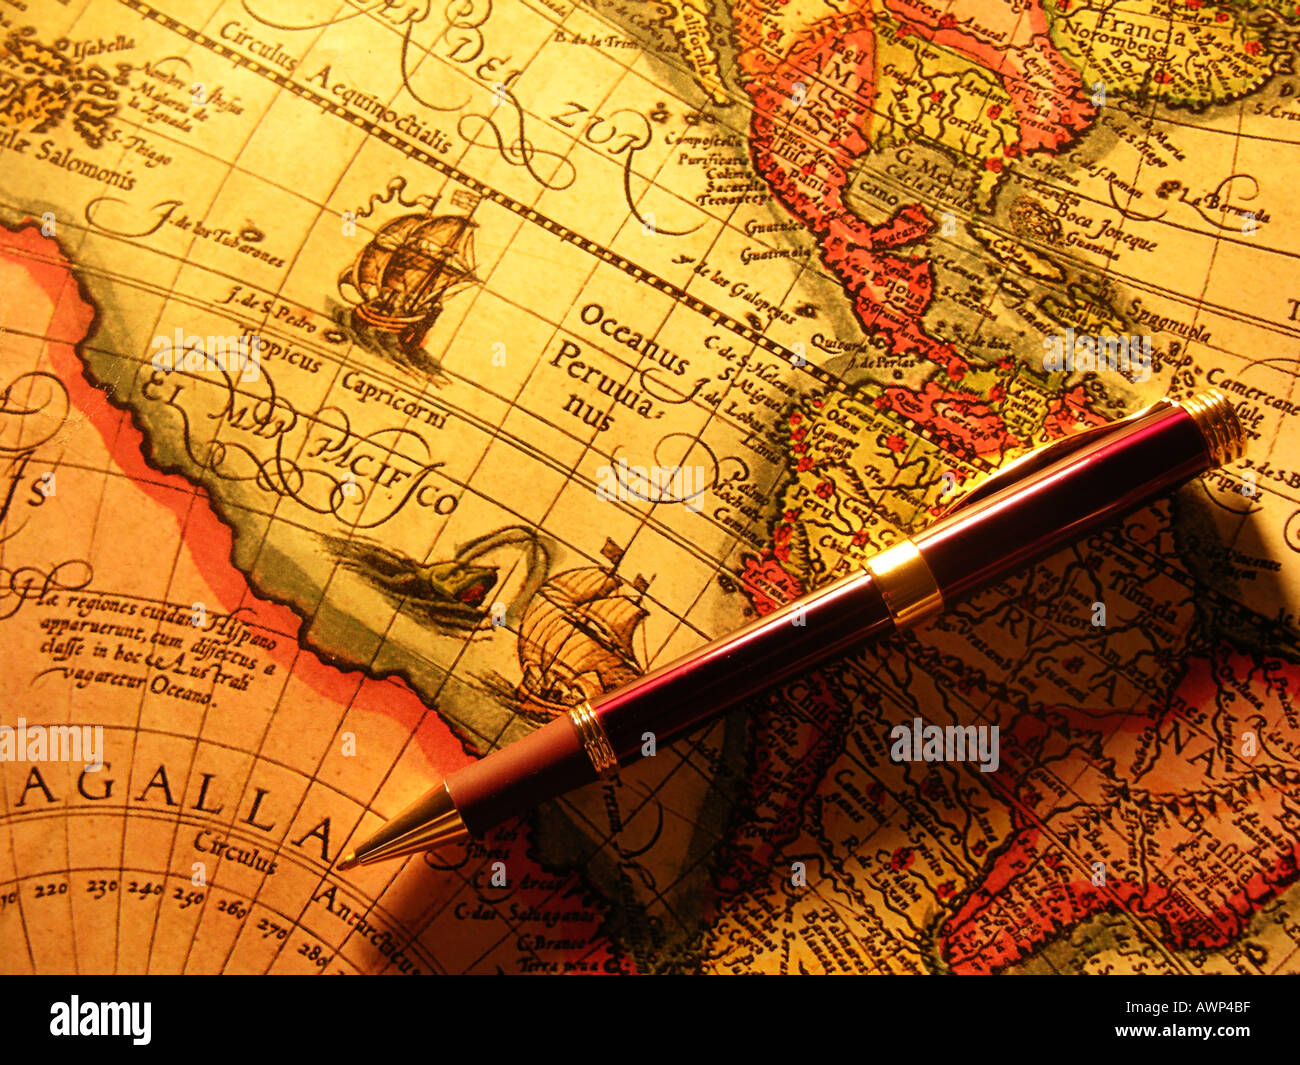 Pen on old world map stock photo royalty free image 3089598 alamy pen on old world map sciox Images